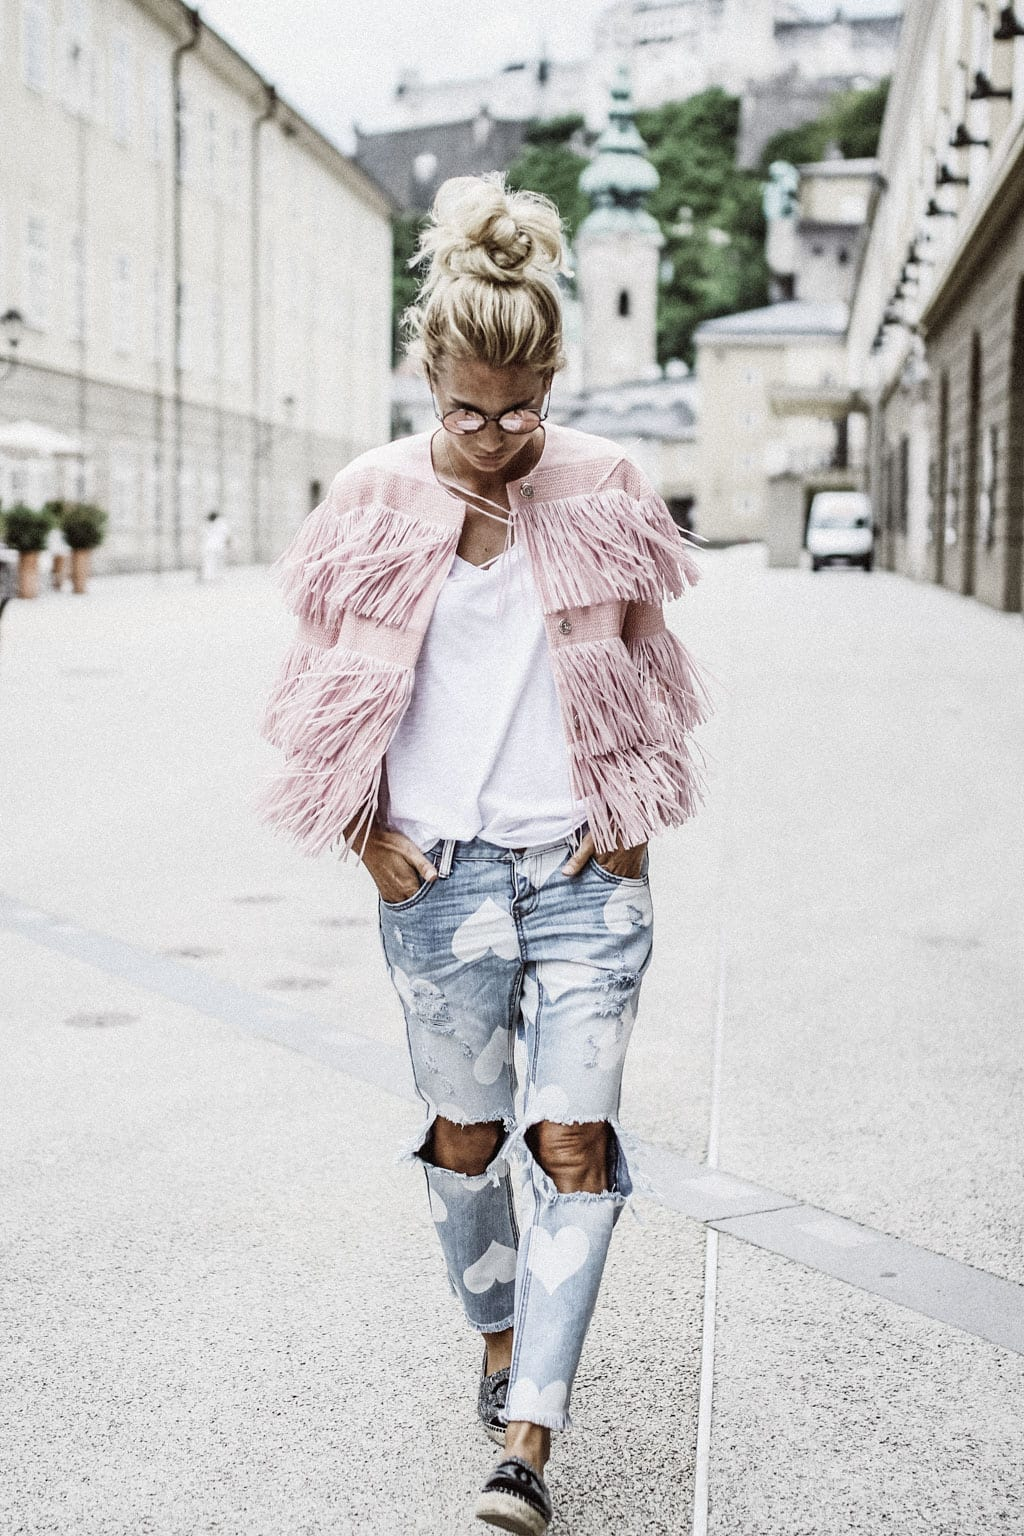 Constantly-K-karin-kaswurm-pink-rieger-jacket-salzburg-fashion-street-style-2899